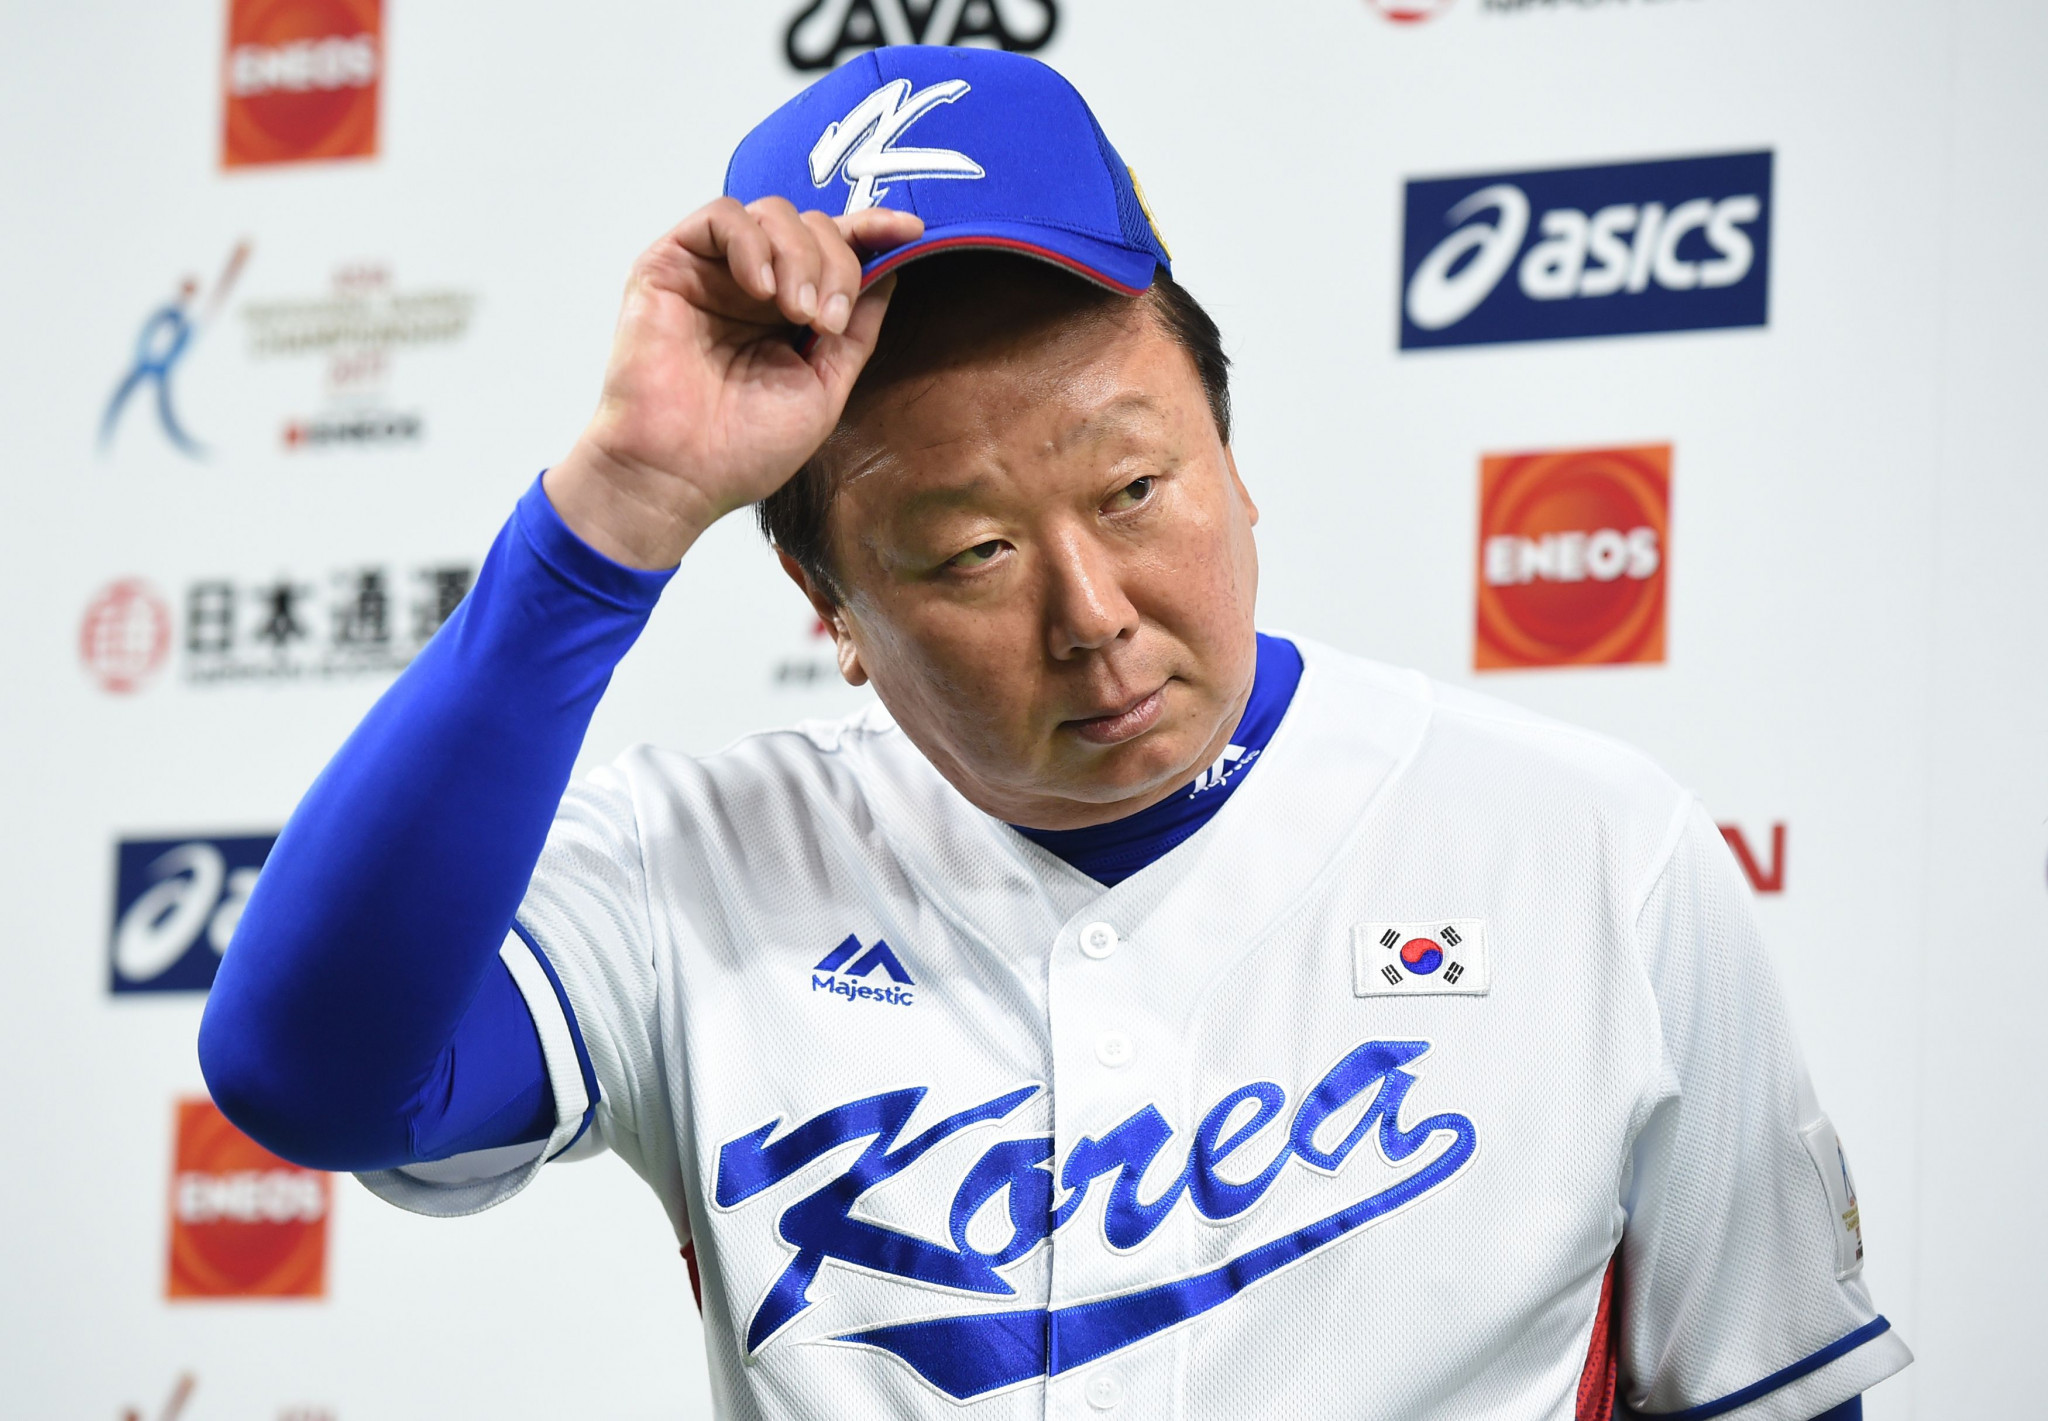 South Korea's baseball manager says he will disregard players' military status when picking Asian Games squad